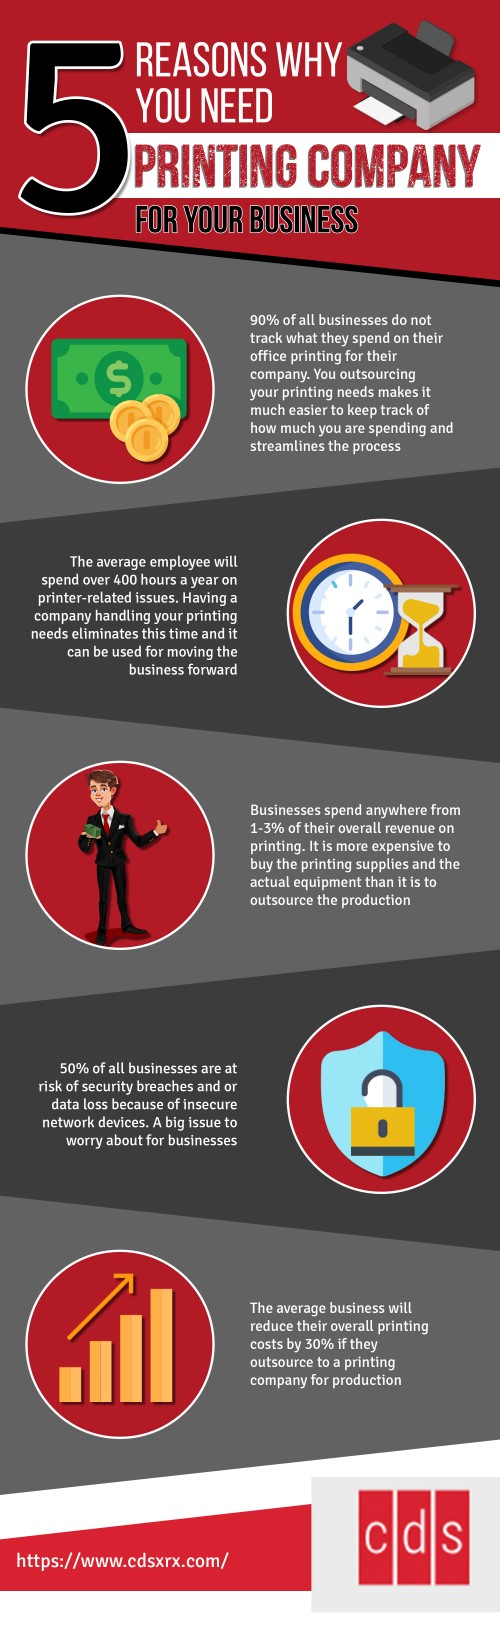 5-Reasons-Why-You-Need-a-Printing-Company-for-your-Business-Infographicafad7e1abfe2f49e.jpg